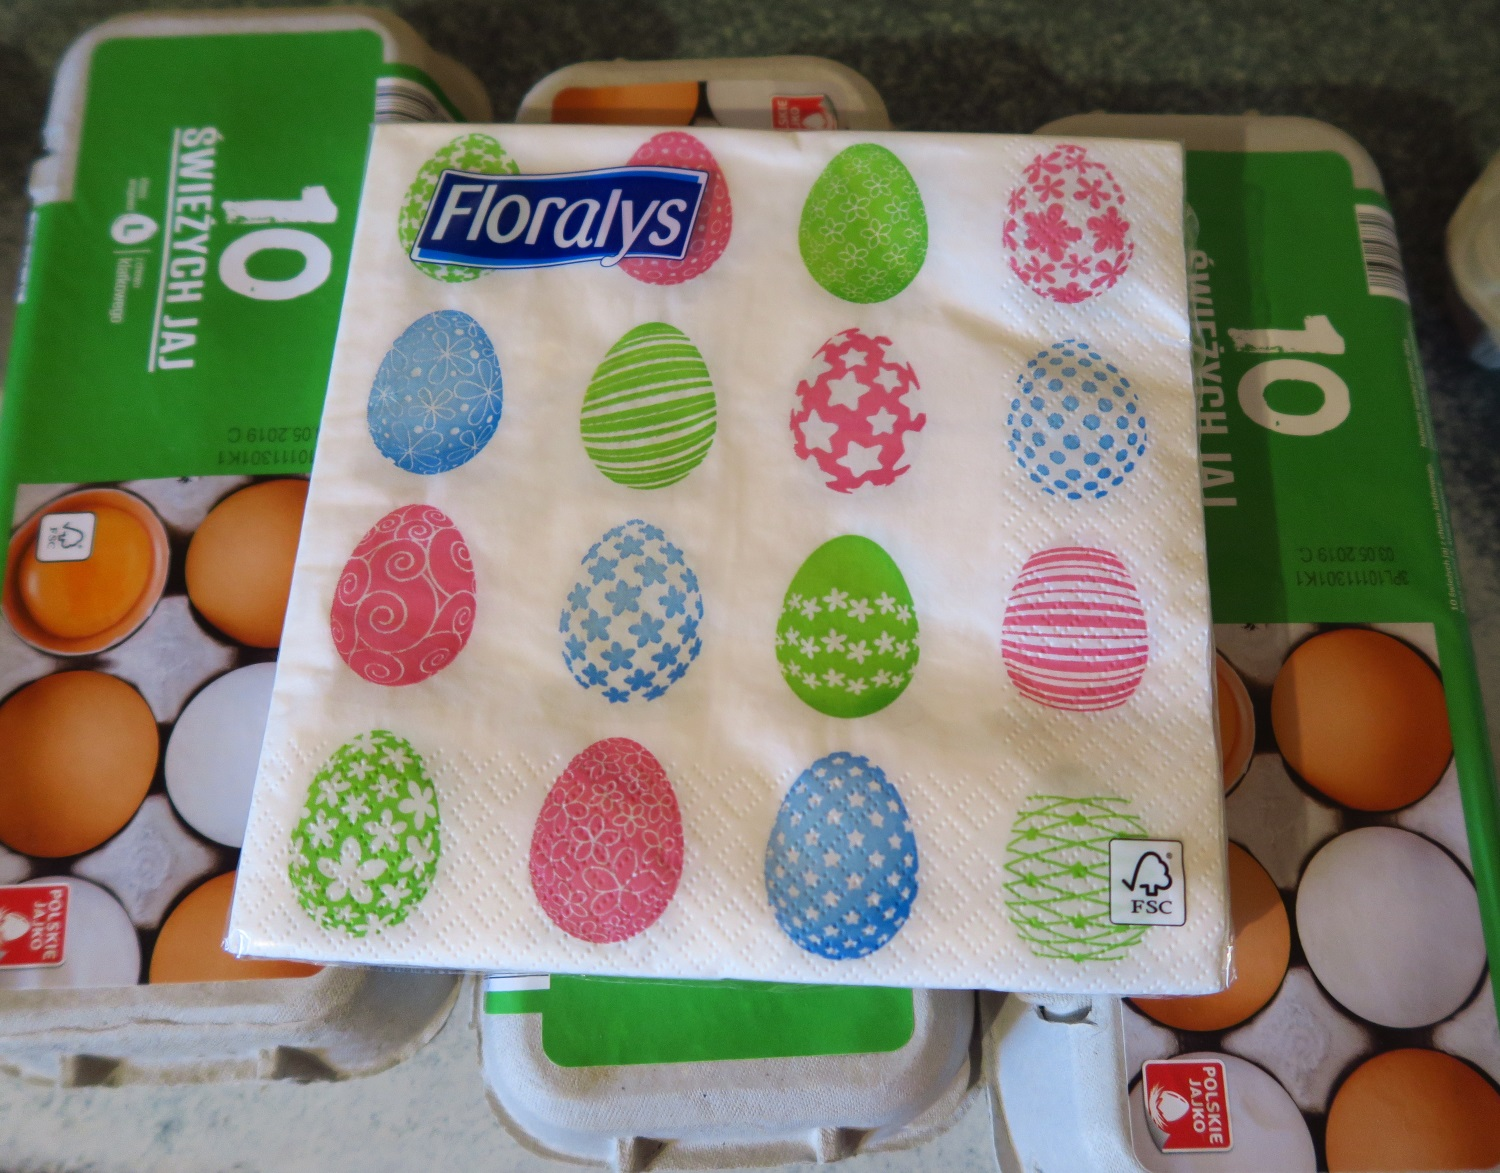 I picked up a package of Easter egg napkins as well when I was in the store.